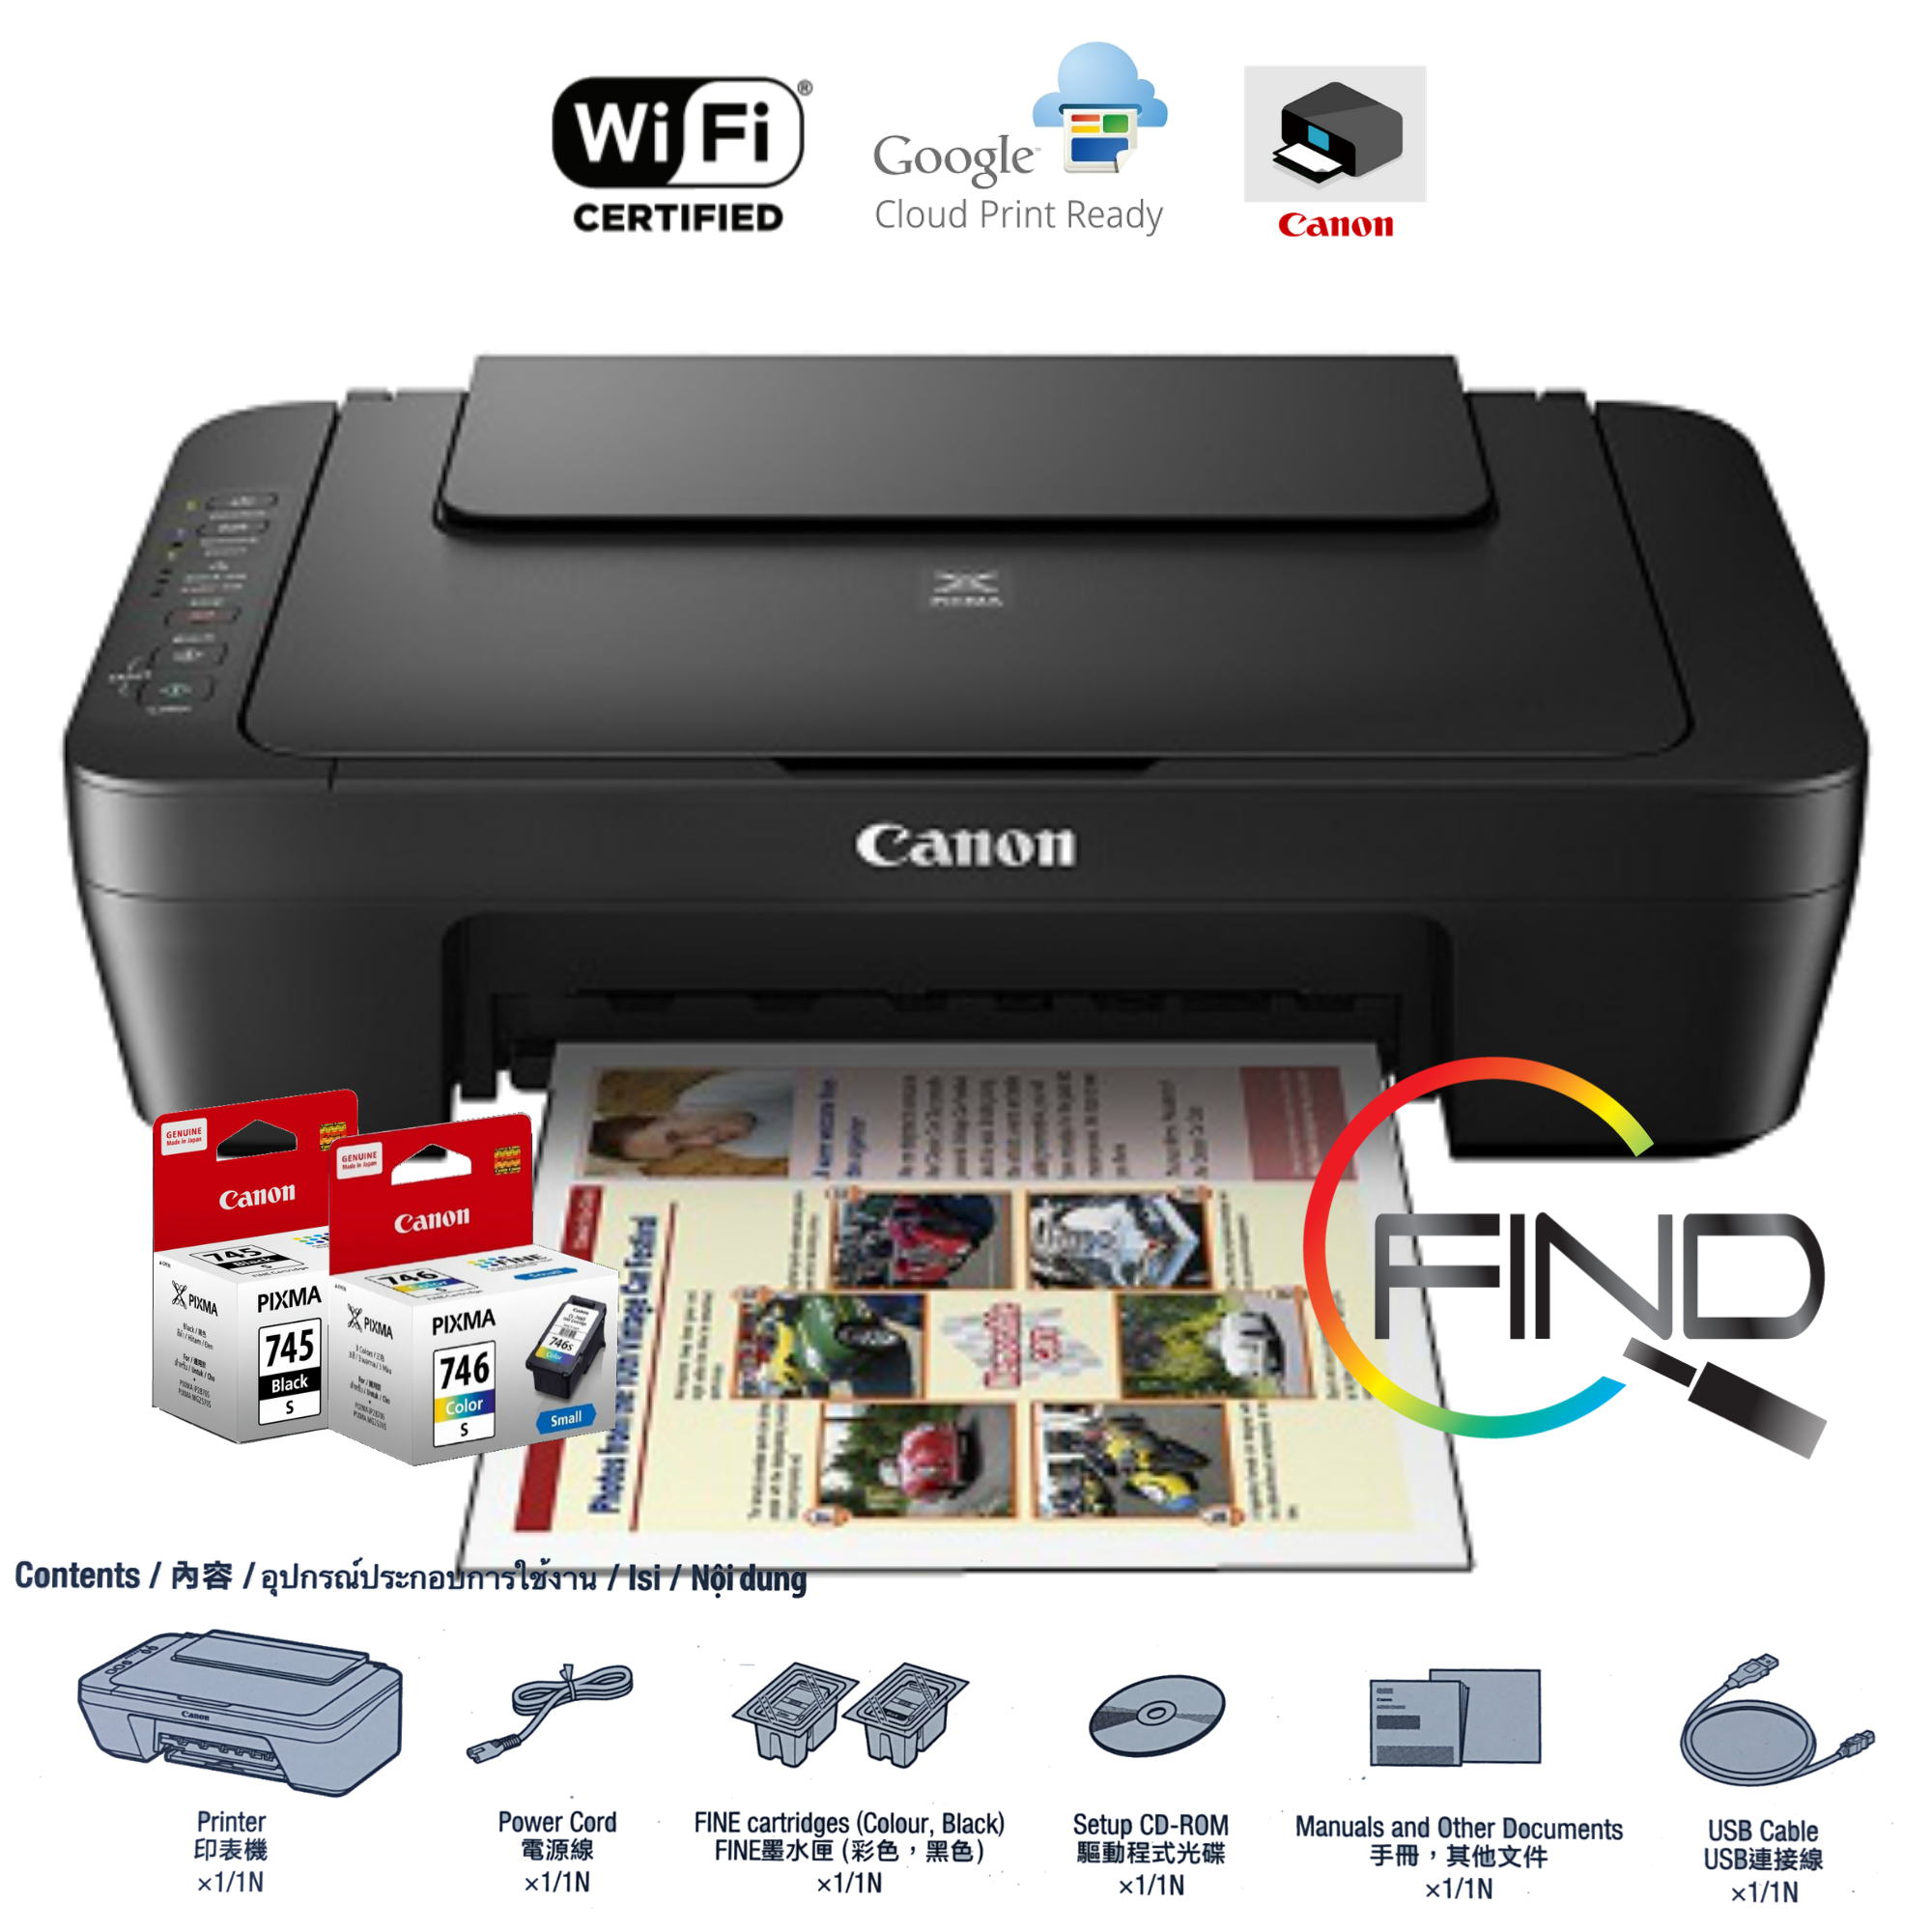 Canon Pixma MG3070S WIFI Wireless All-In-One Home Use Colour InkJet Printer (Print/Scan/Copy) Support Direct phone print (FINDC)